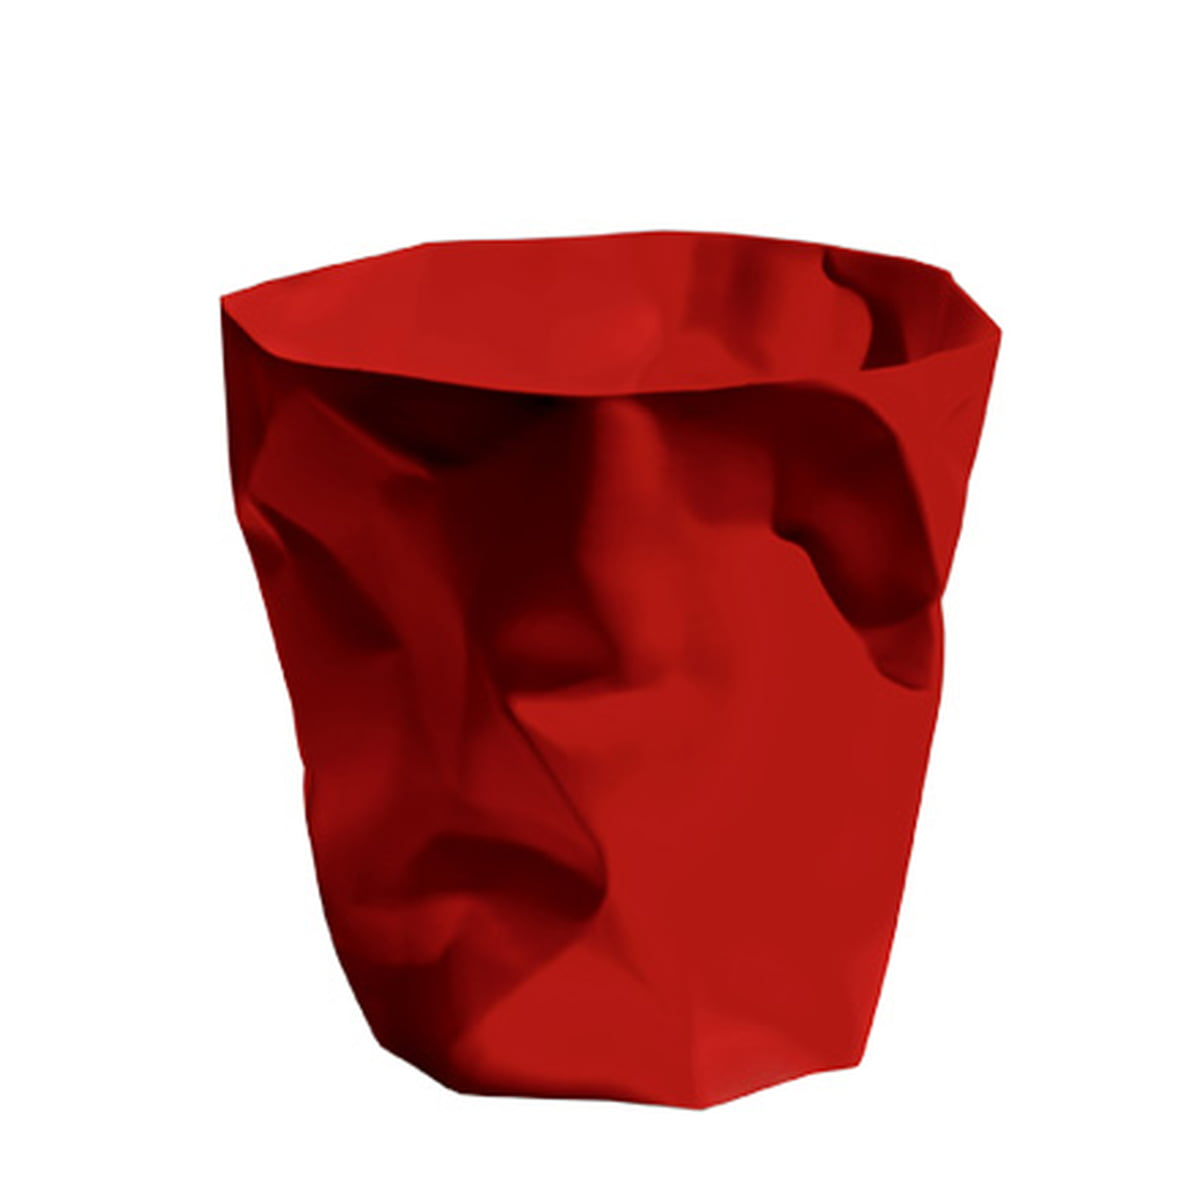 Binbin red original